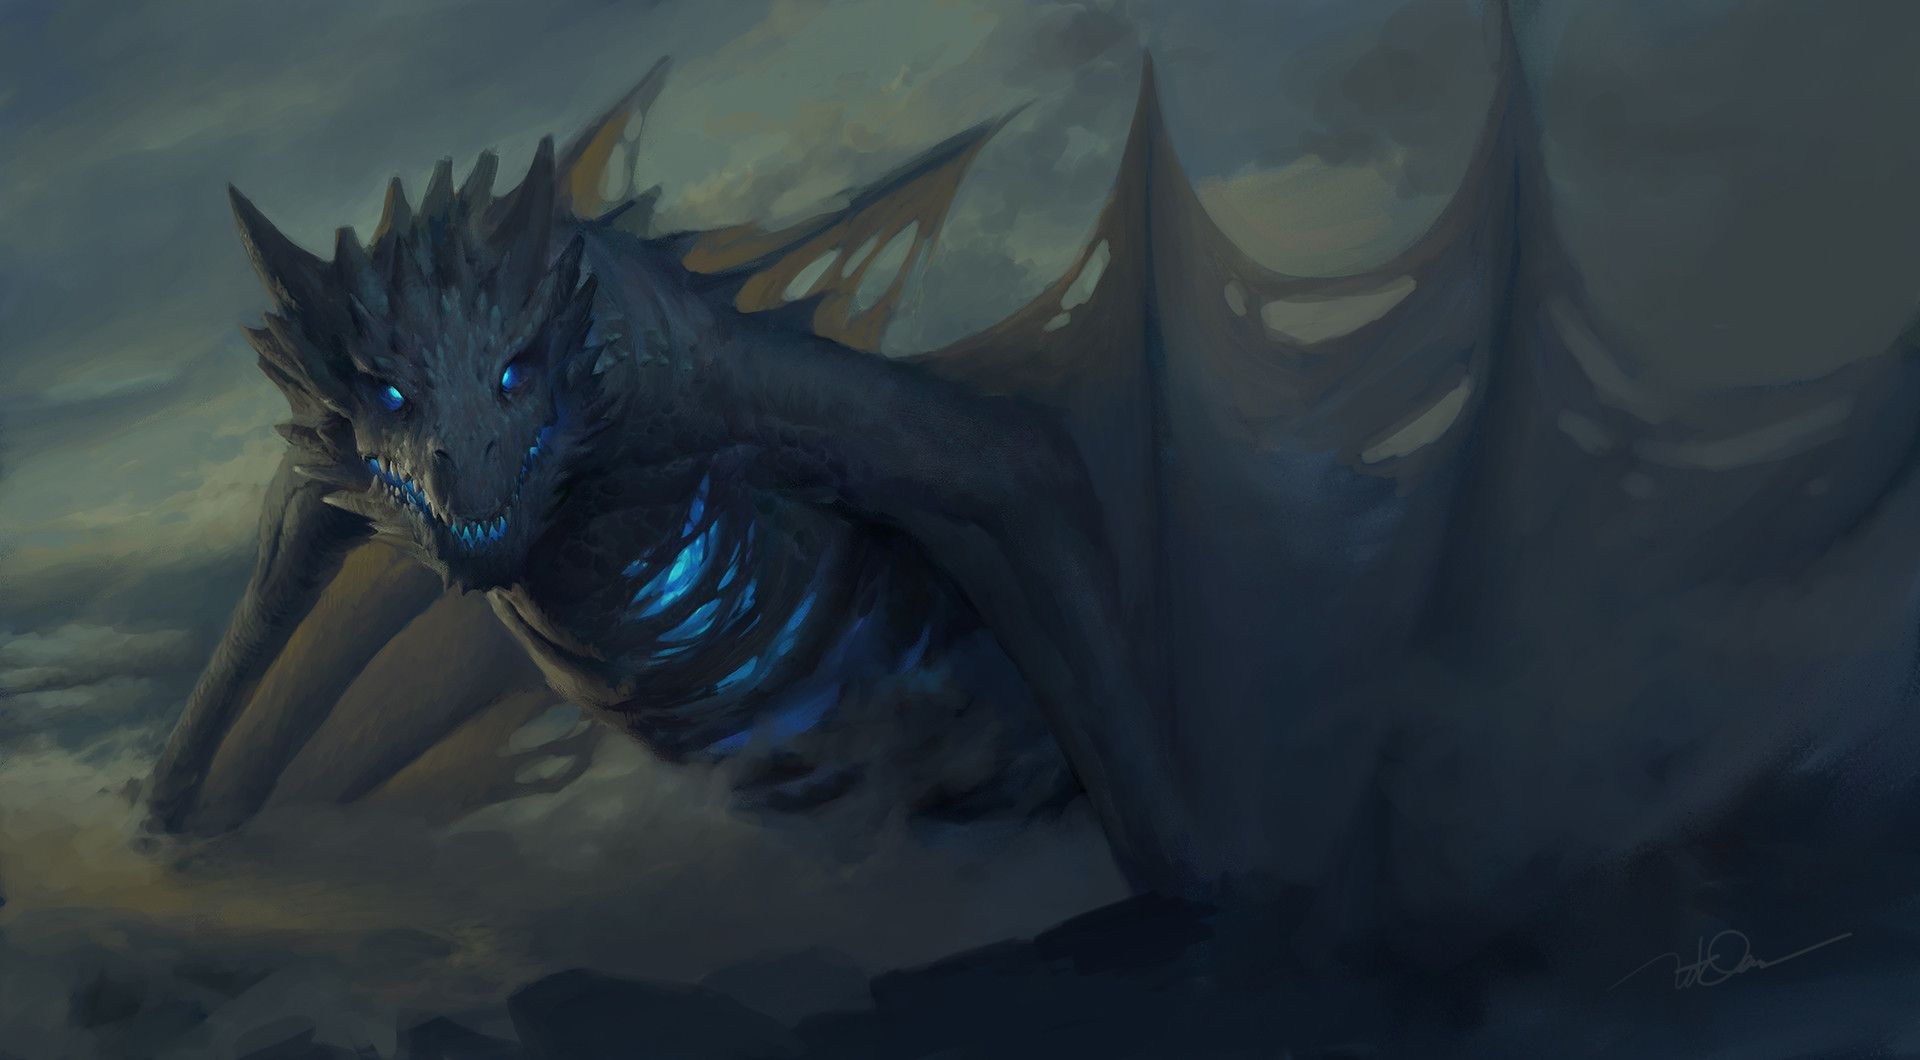 Ice Dragon Game of Thrones Wallpapers - Top Free Ice Dragon